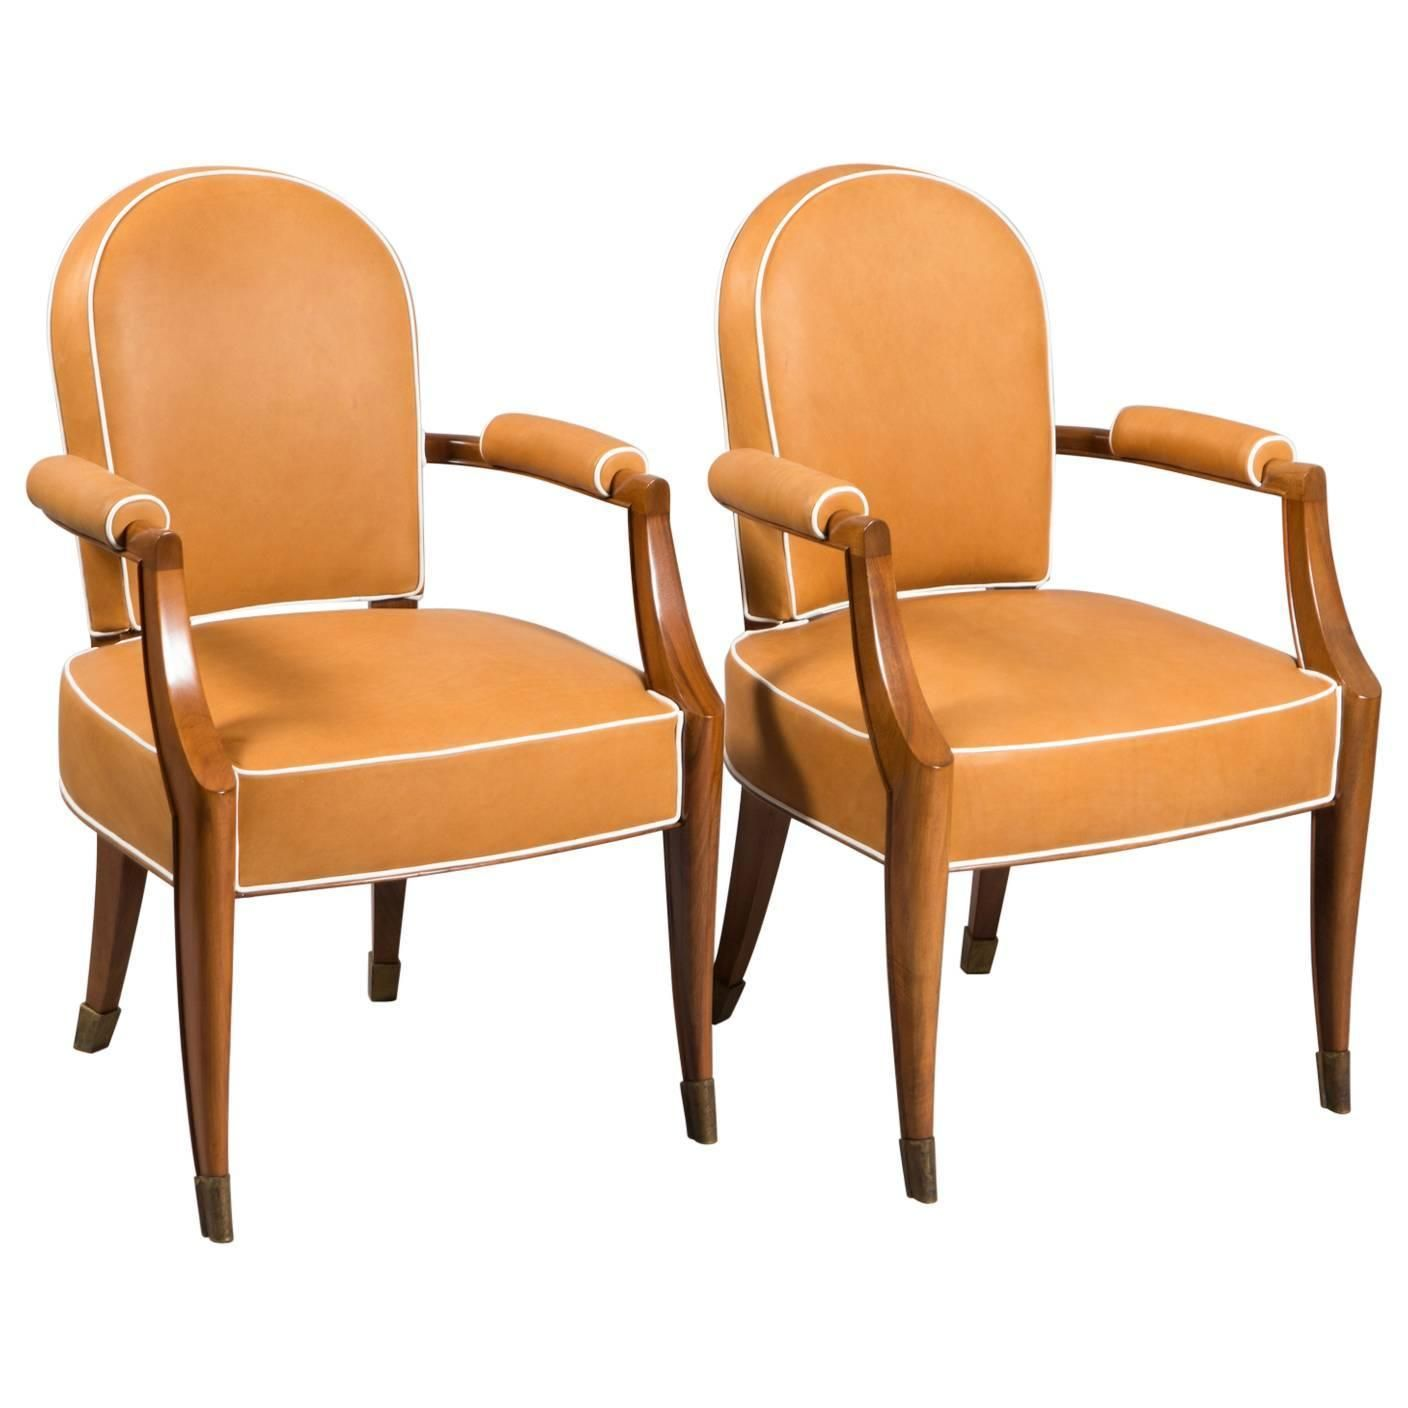 Pair Of 1stdibs Wood Deco Armchairs Art Deco French Chairs ...